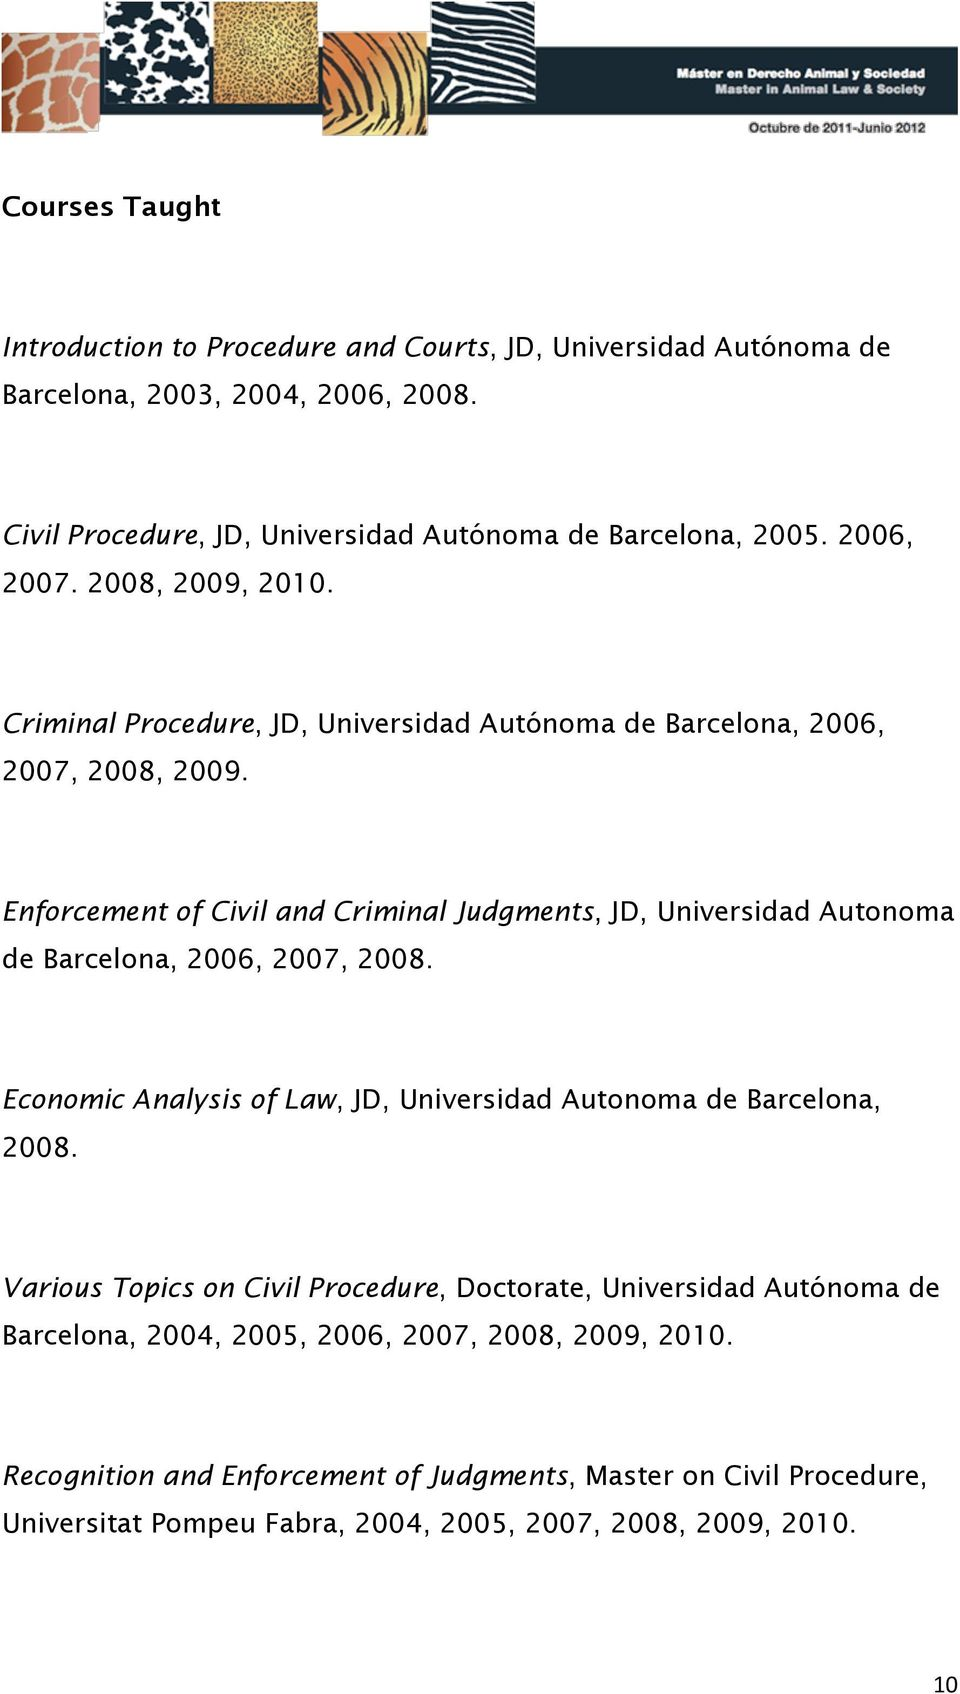 Enforcement of Civil and Criminal Judgments, JD, Universidad Autonoma de Barcelona, 2006, 2007, 2008. Economic Analysis of Law, JD, Universidad Autonoma de Barcelona, 2008.